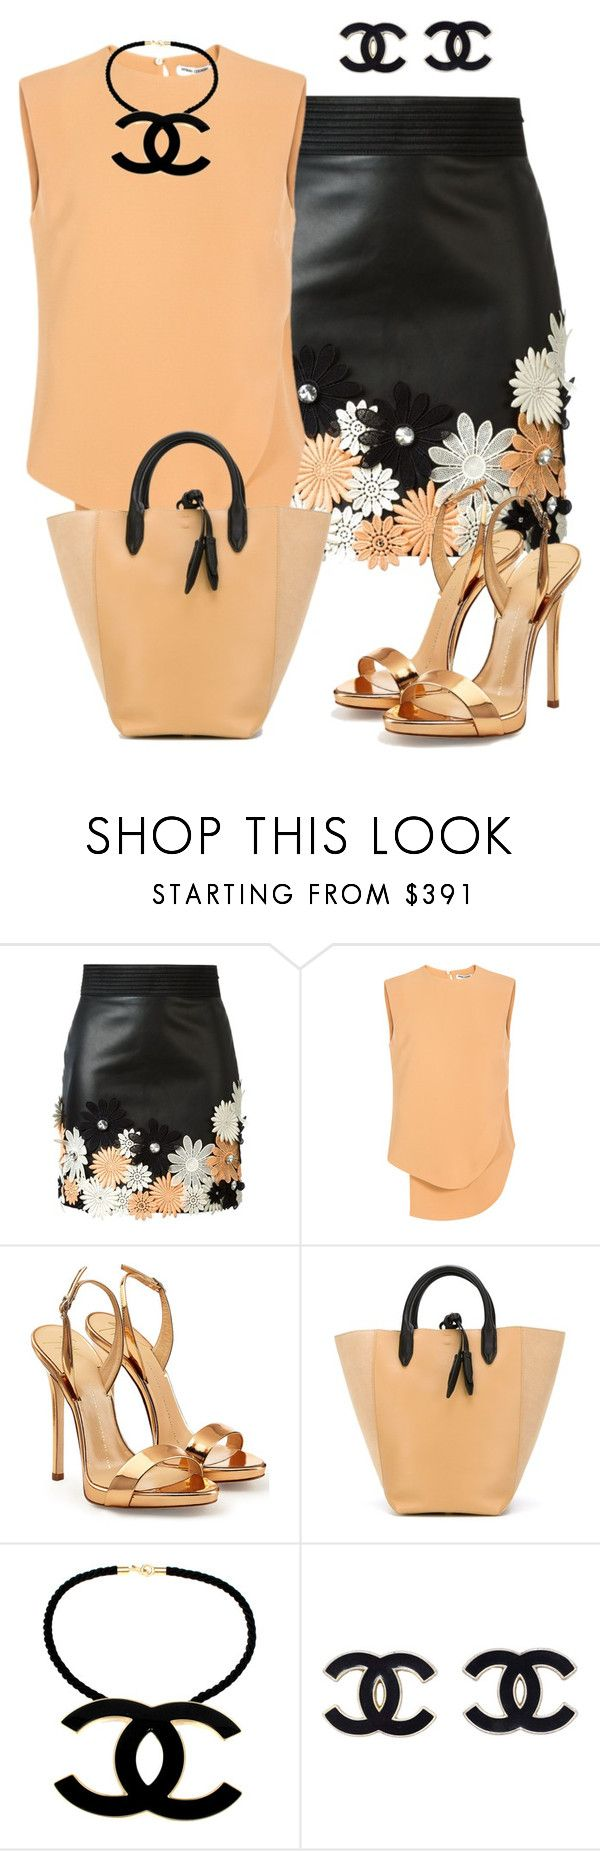 """Sin título #1293"" by marisol-menahem ❤ liked on Polyvore featuring Emanuel Ungaro, Opening Ceremony, Giuseppe Zanotti, 3.1 Phillip Lim, Chanel, women's clothing, women's fashion, women, female and woman"